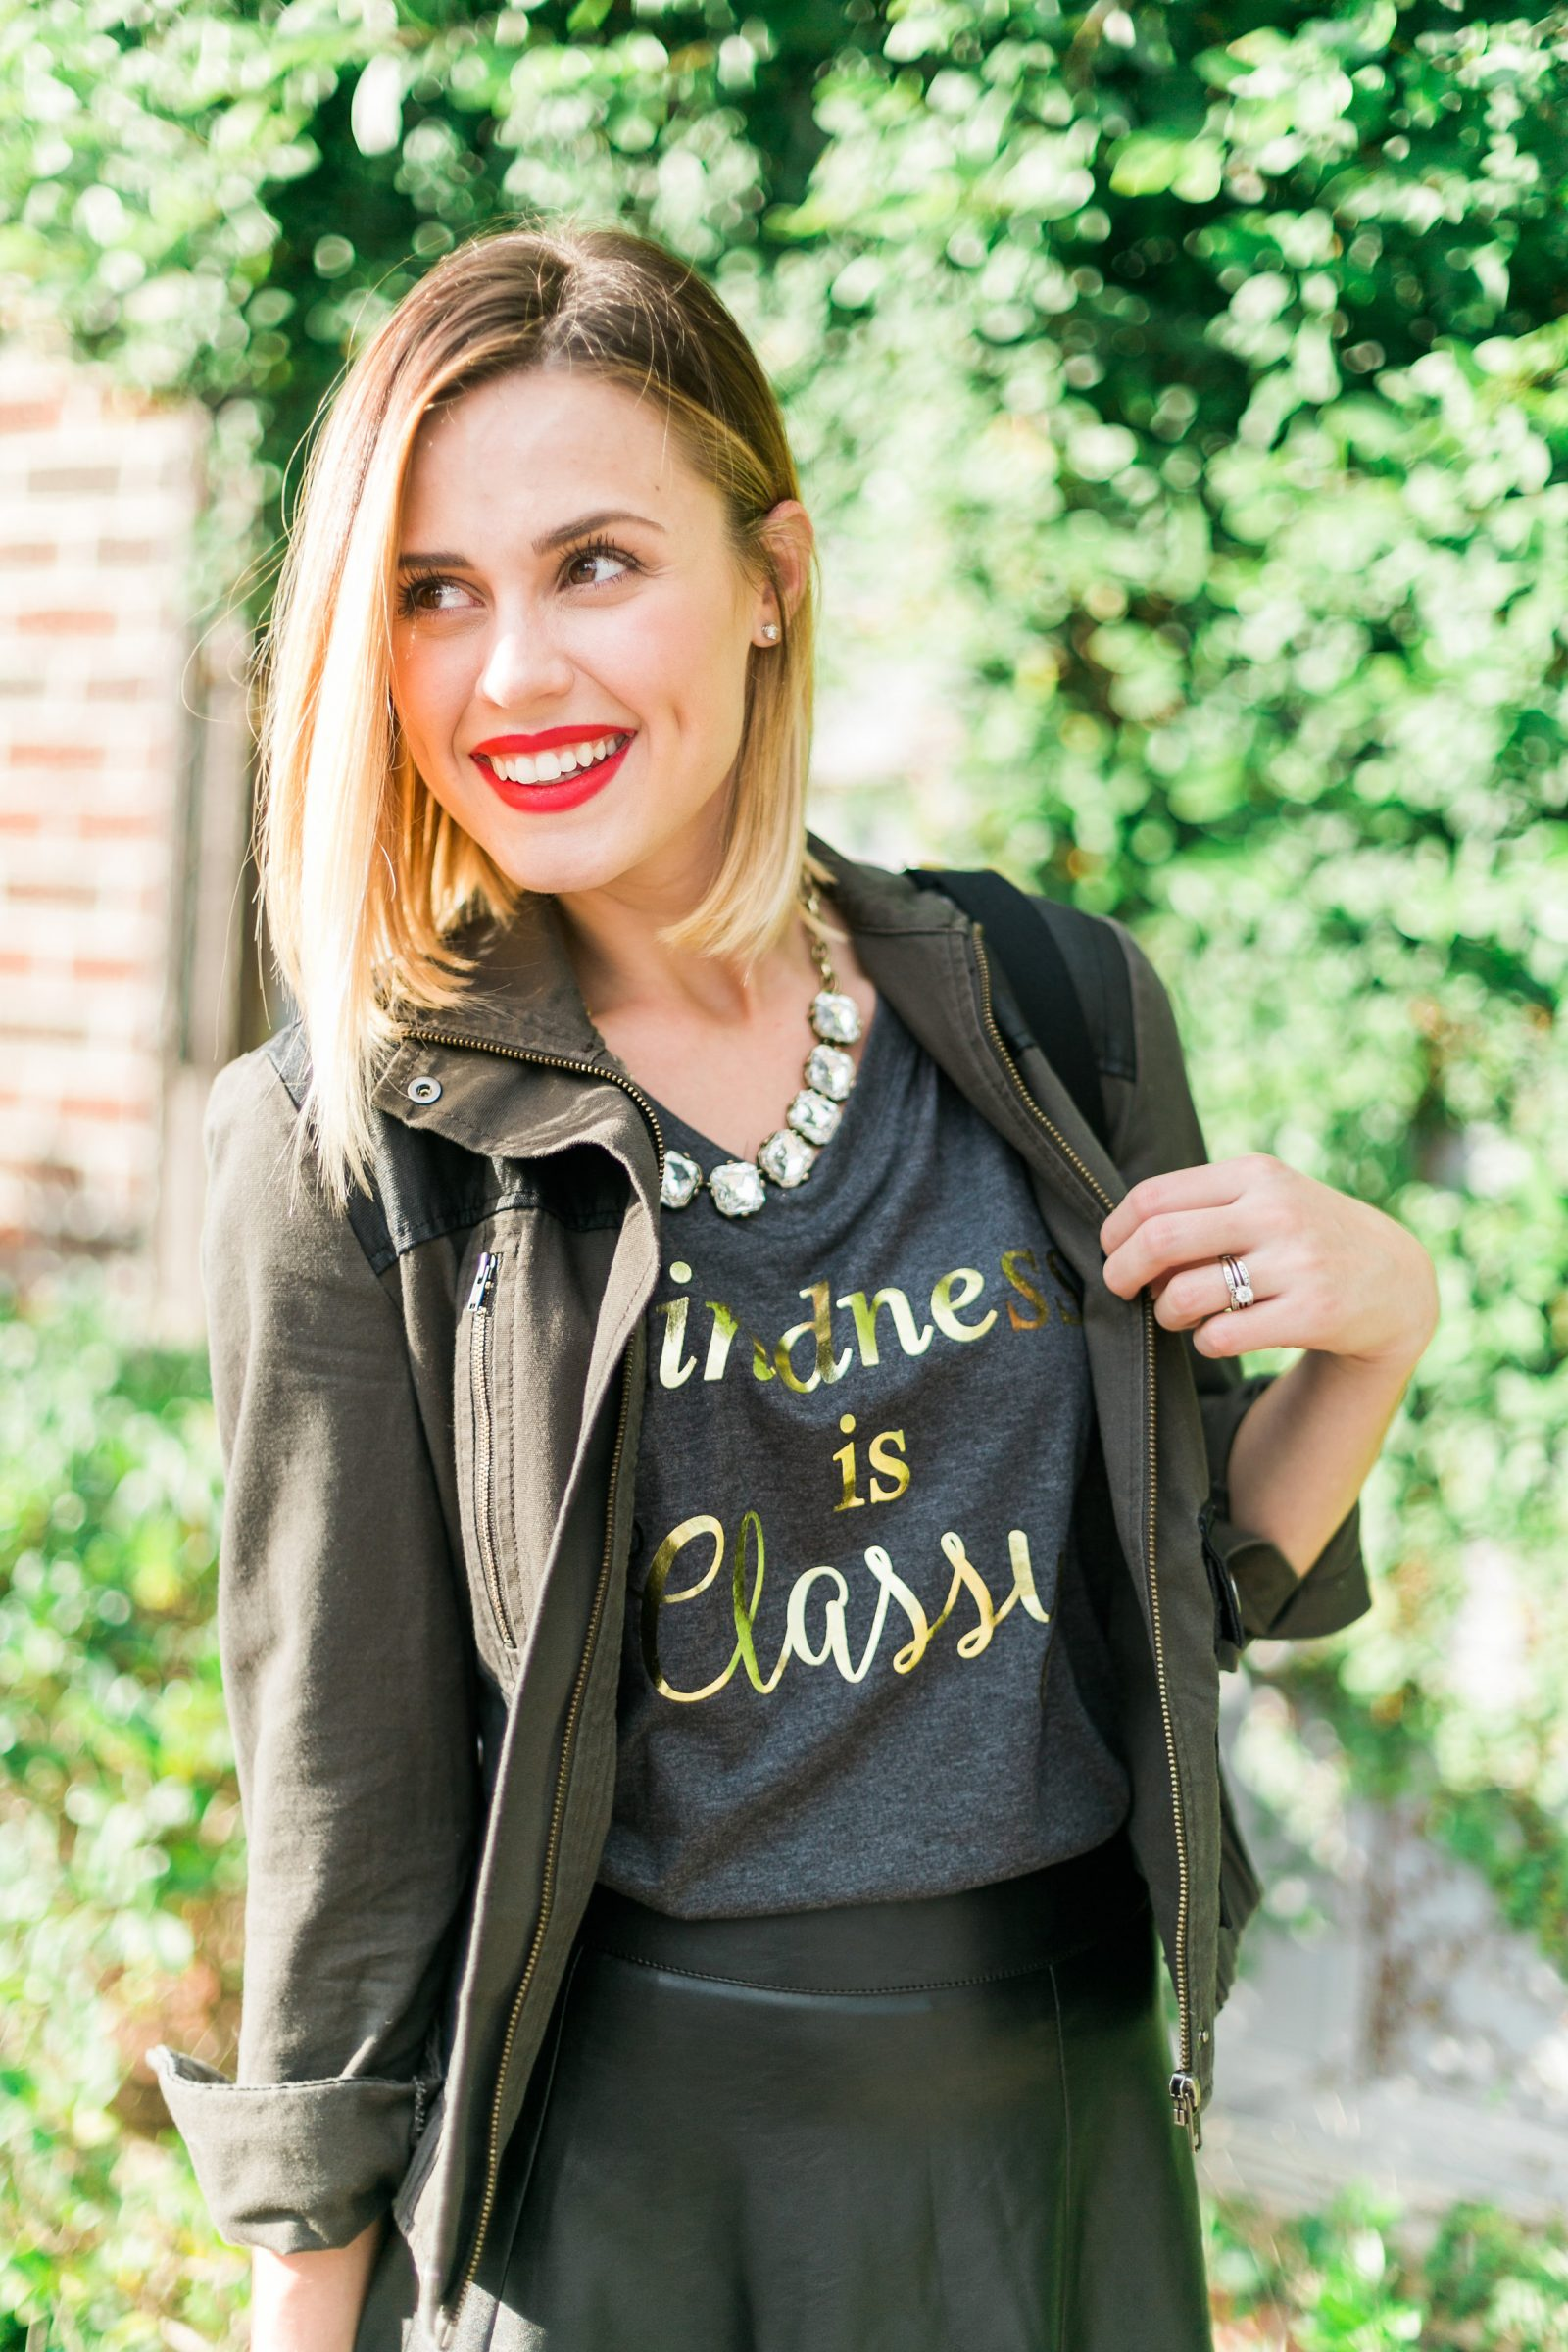 Houston fashion blogger Uptown with Elly Brown wears a kindness is classy tee